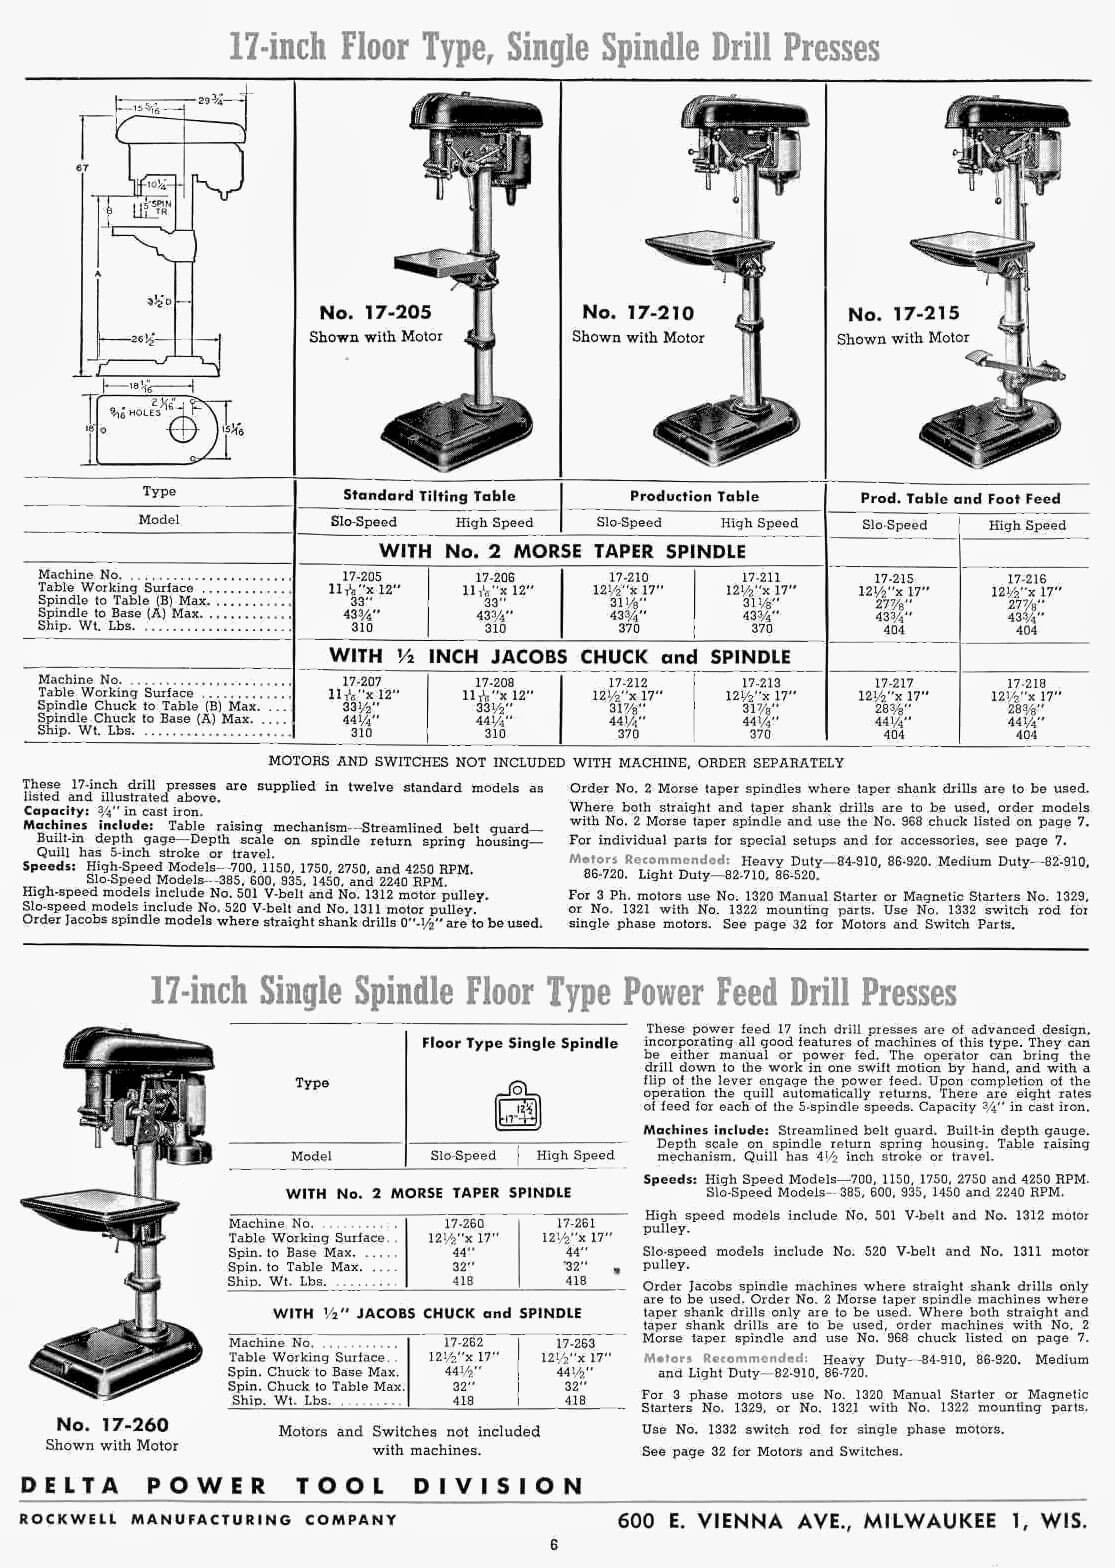 hight resolution of the drill press owners manual above covers a lot of the different variations between the bench and floor models